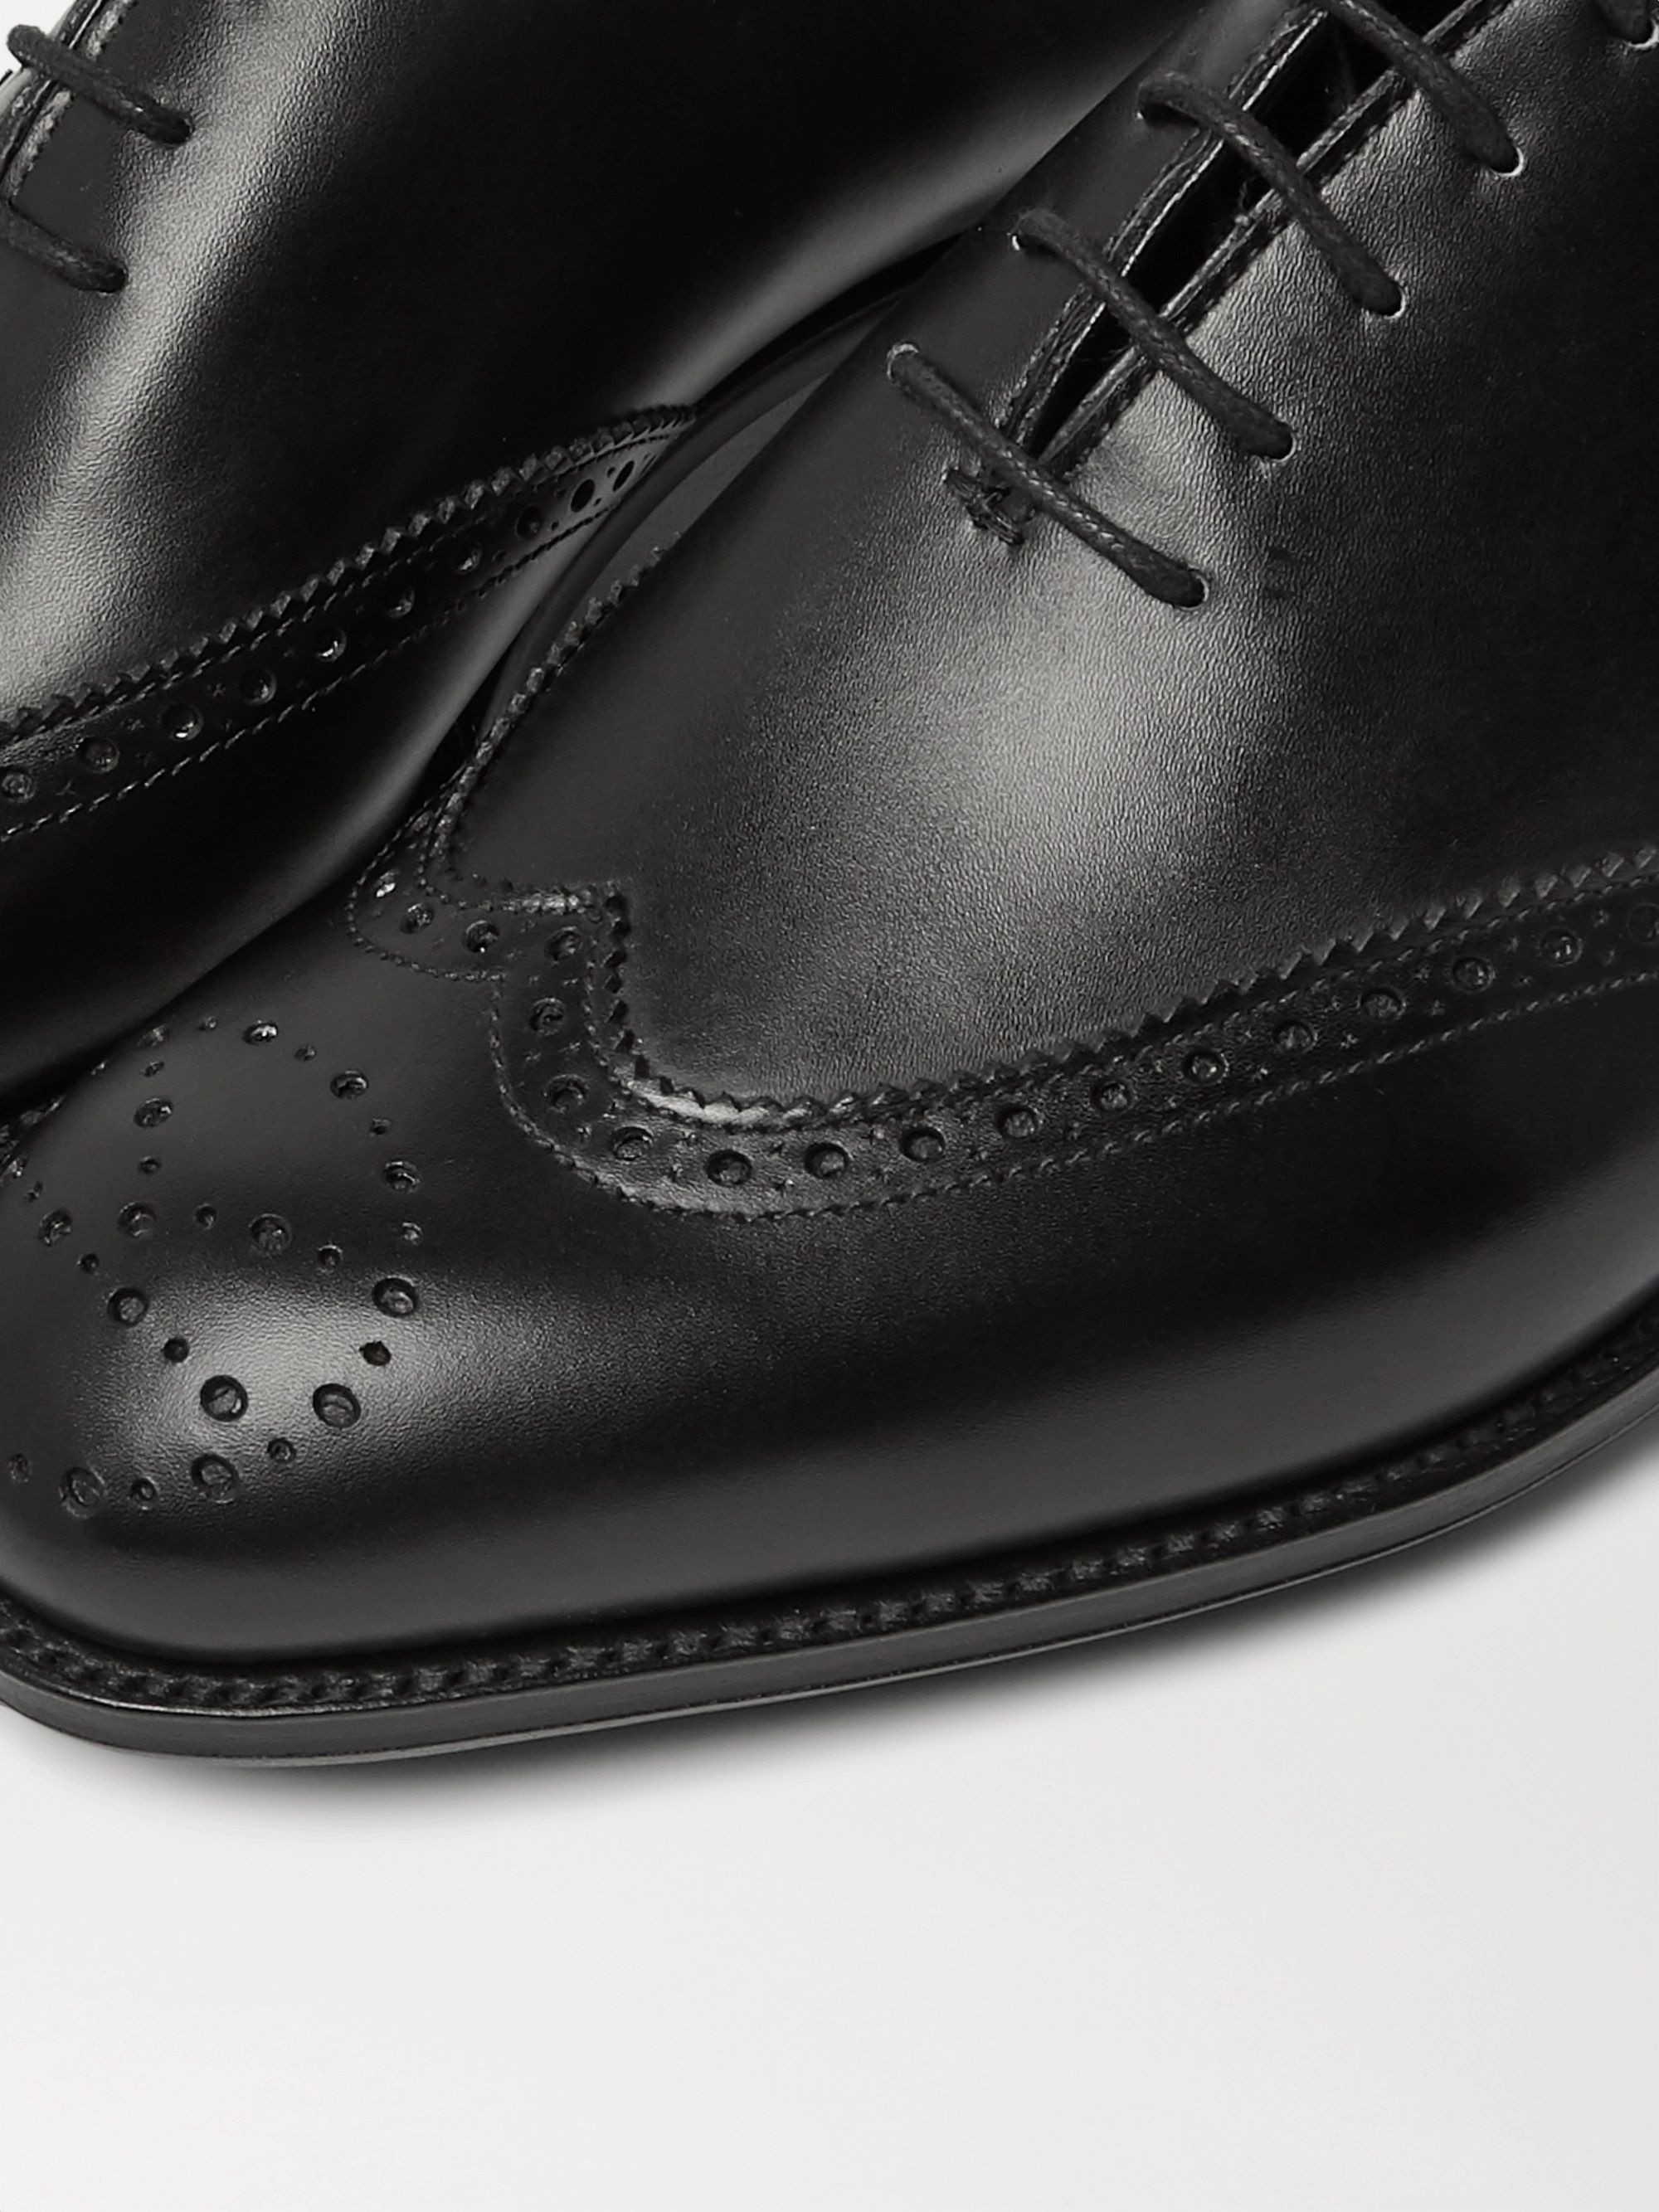 Black + George Cleverley Leather Brogues | Kingsman